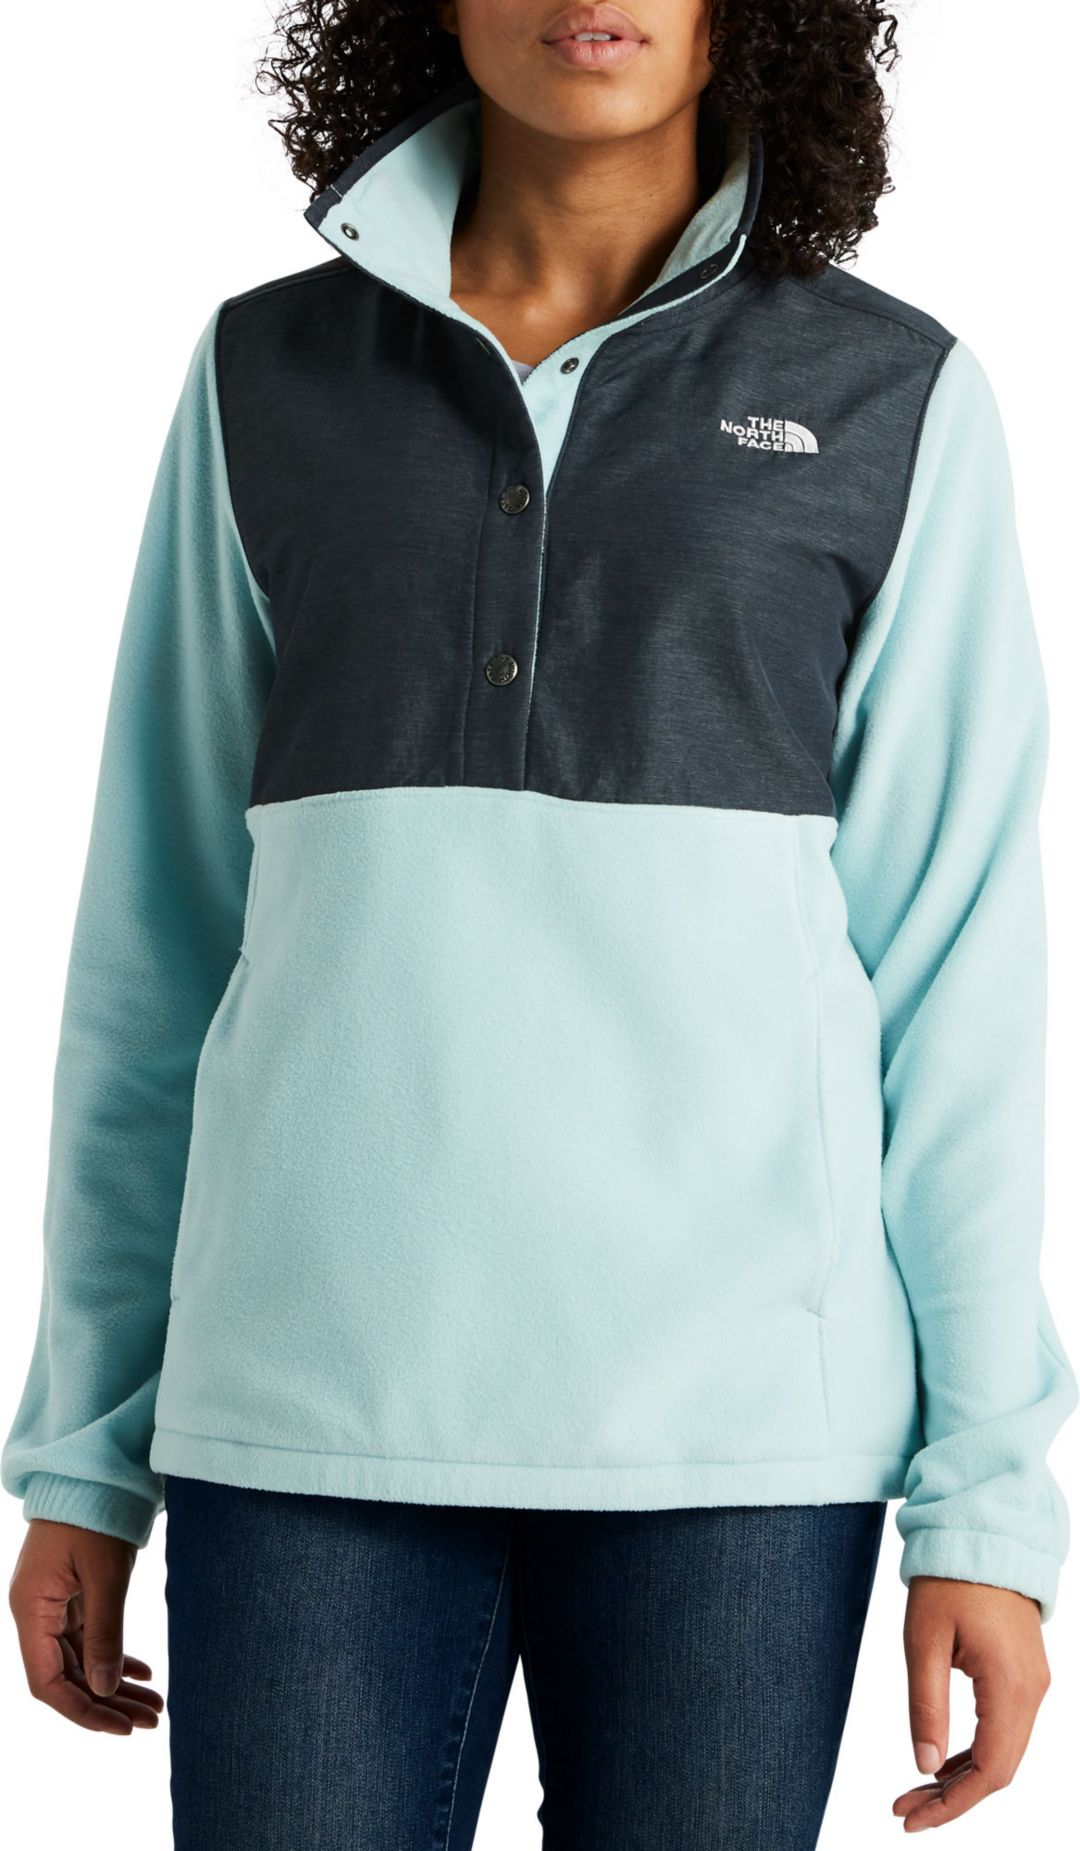 a2ebf3ac2 The North Face Women's Snap It Fleece Pullover